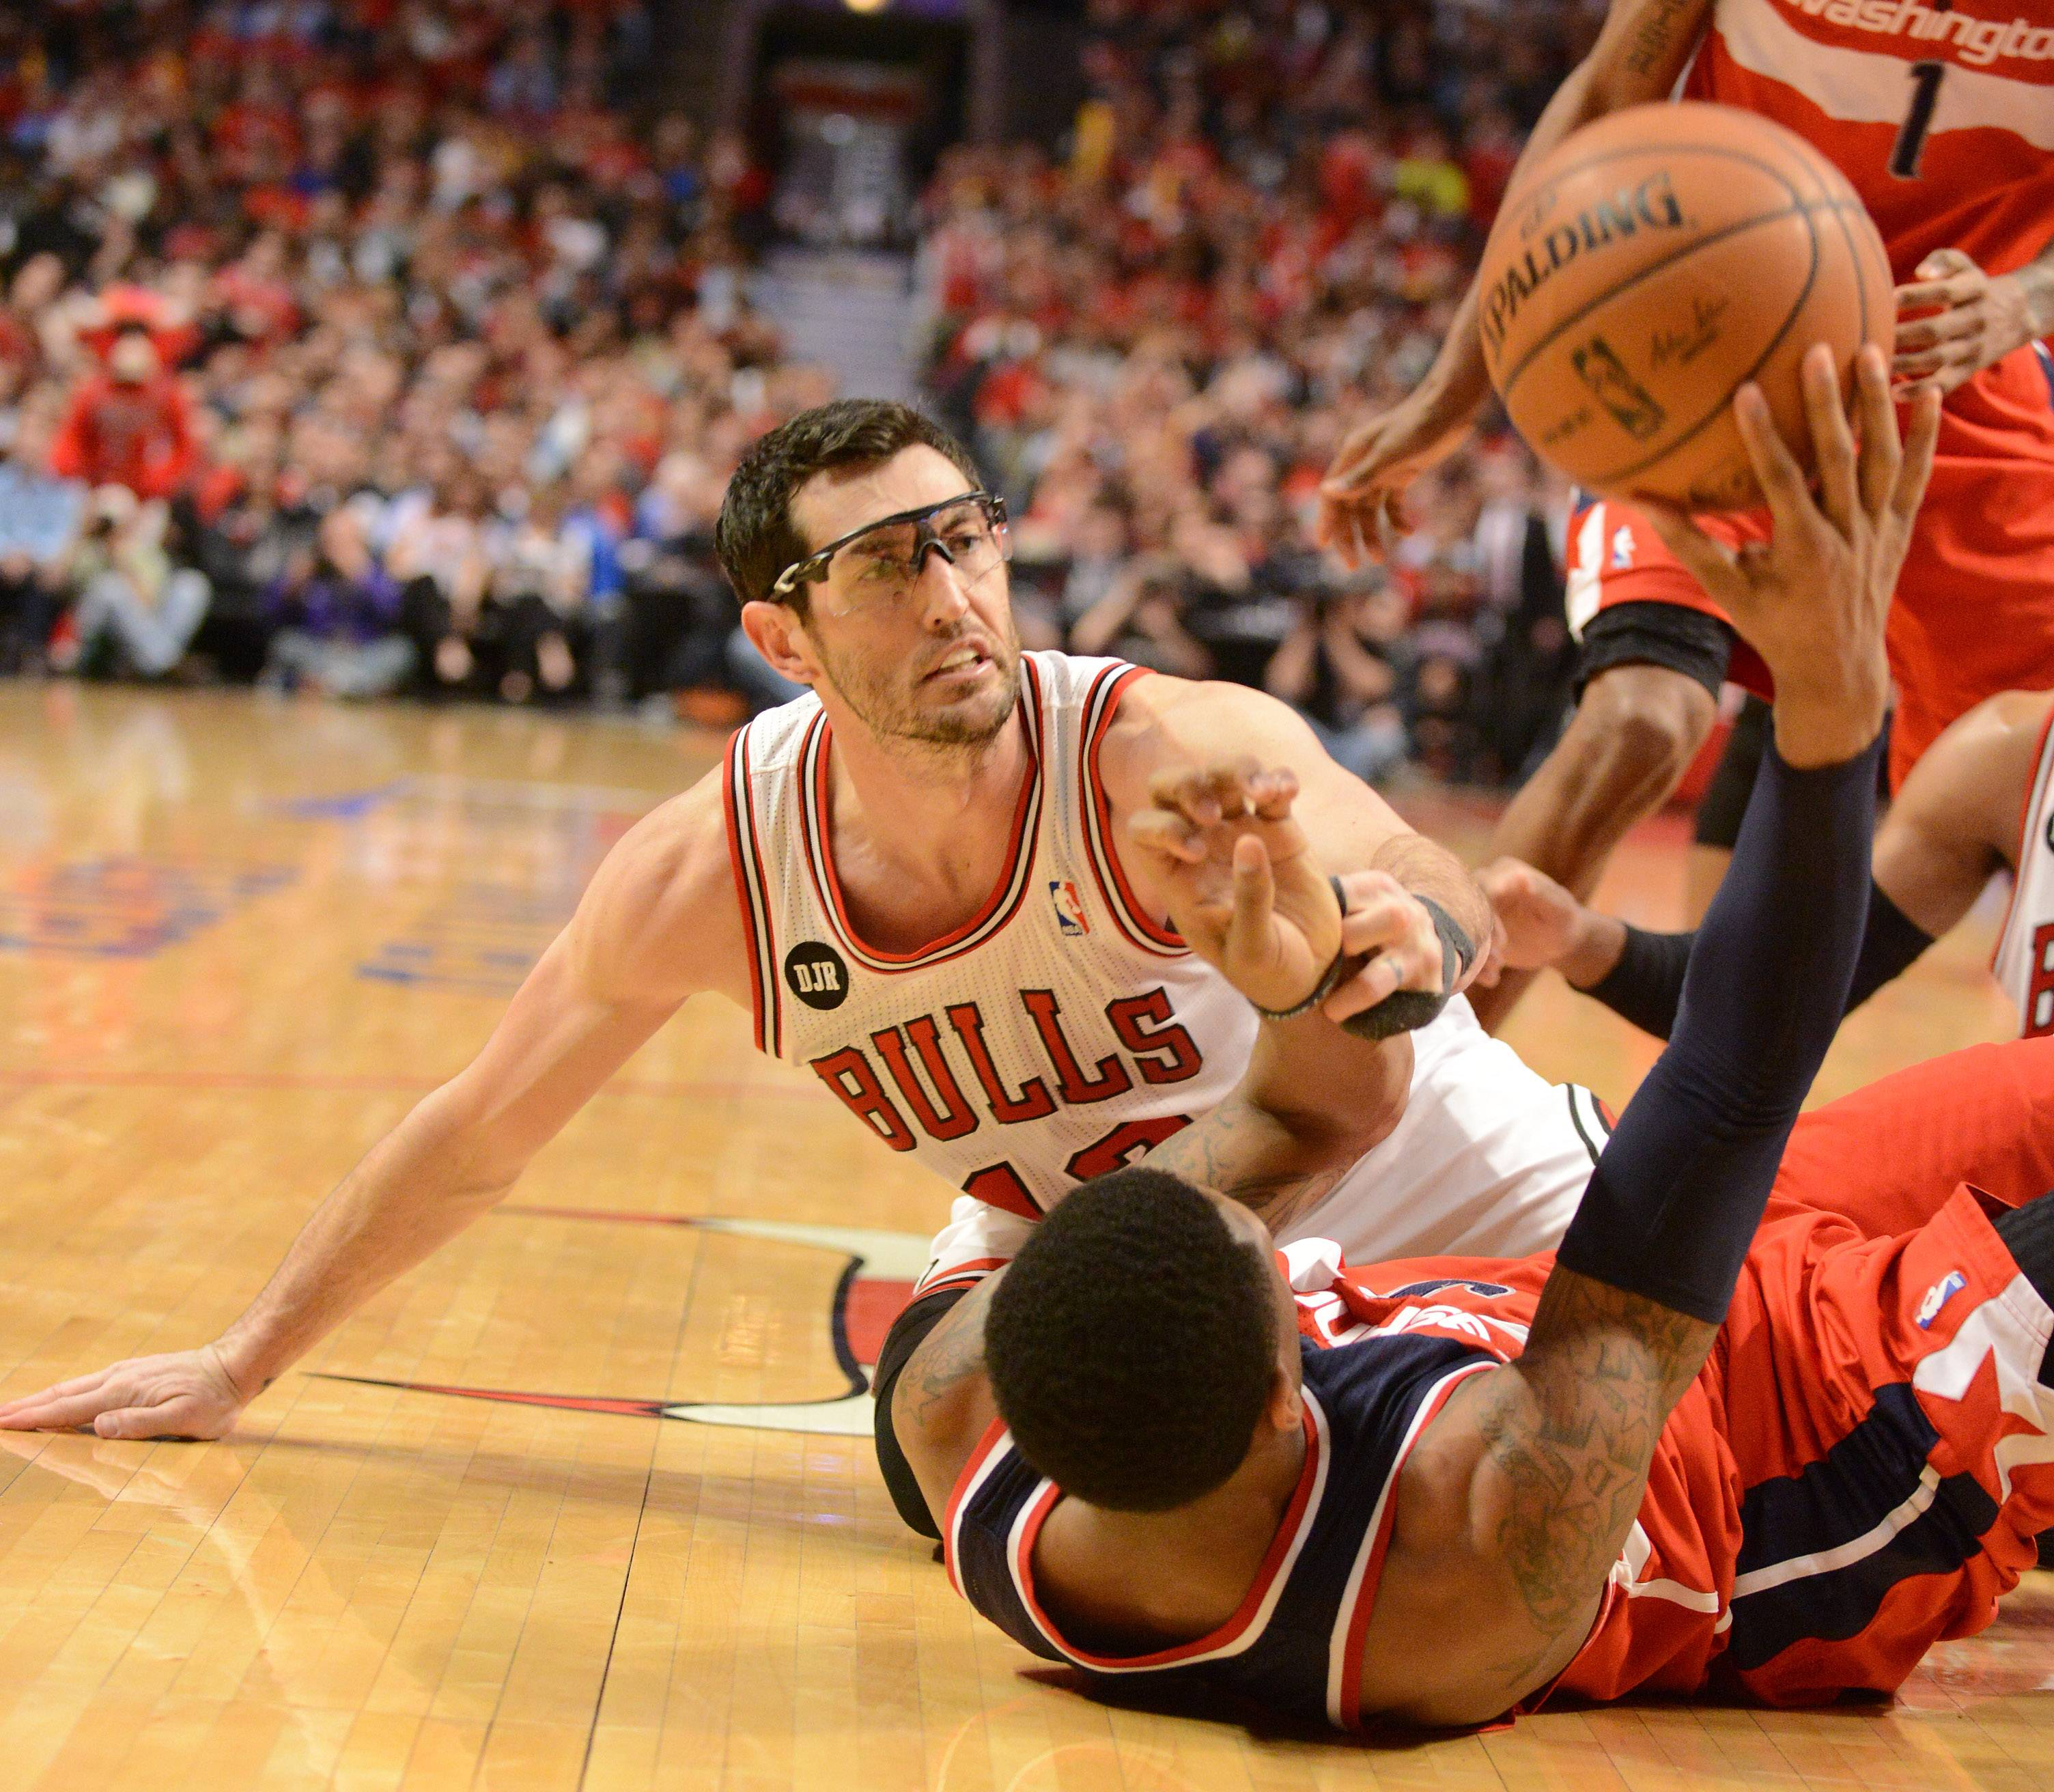 Washington Wizards guard Bradley Beal (3) wins a scramble for the ball with Chicago Bulls guard Kirk Hinrich (12).